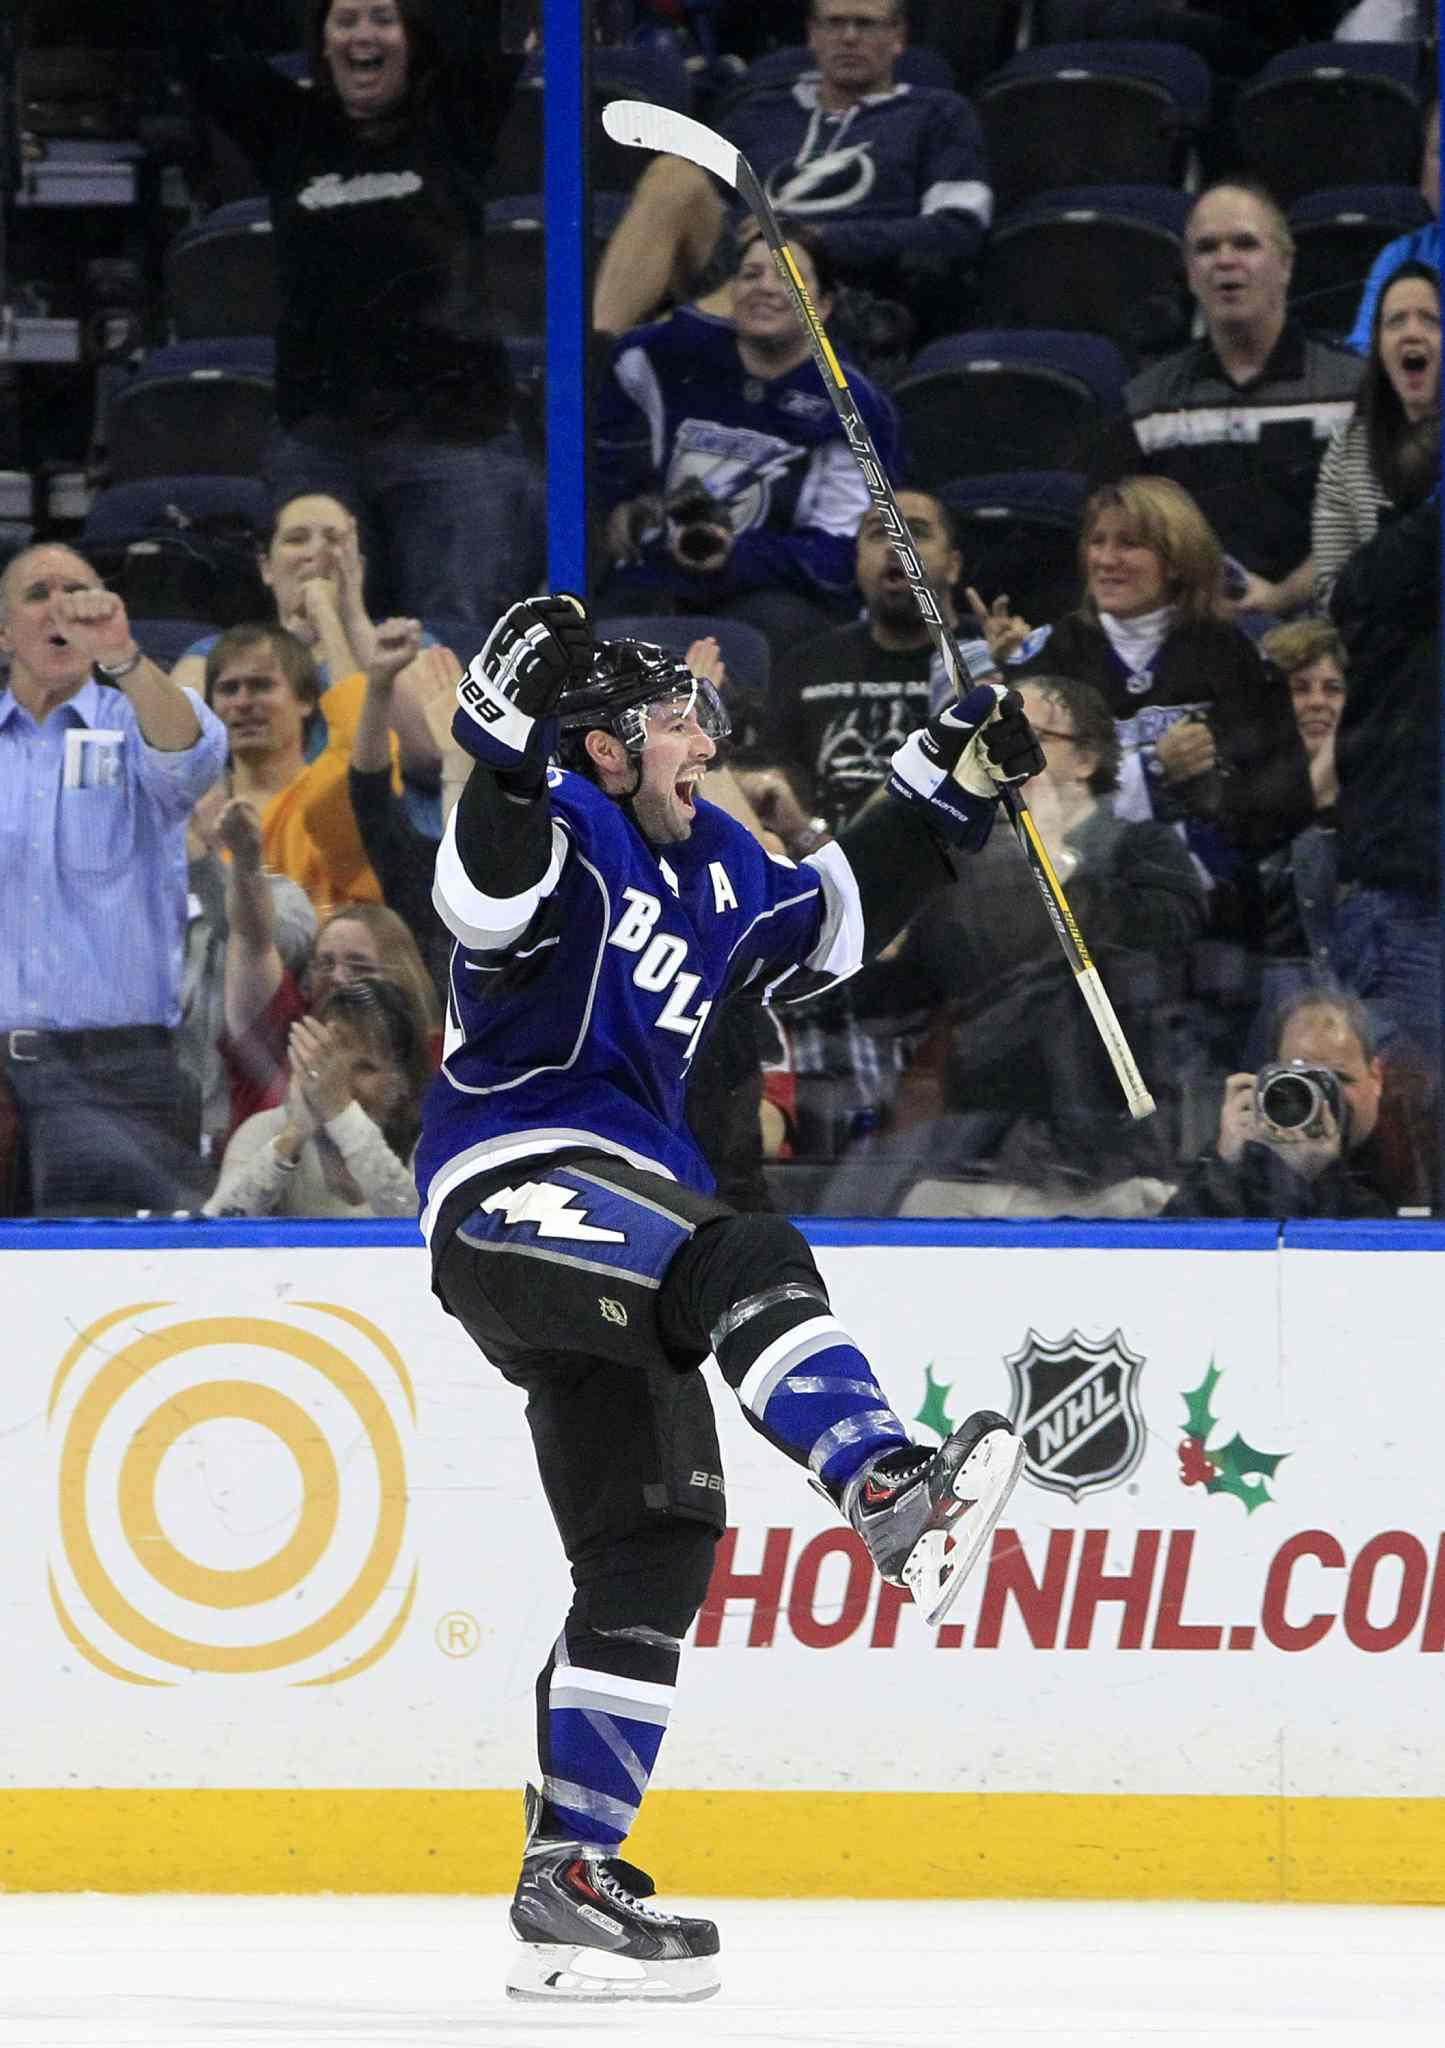 The Tampa Bay Lightning's Nate Thompson celebrates after scoring with 0.2 seconds left in the second period.